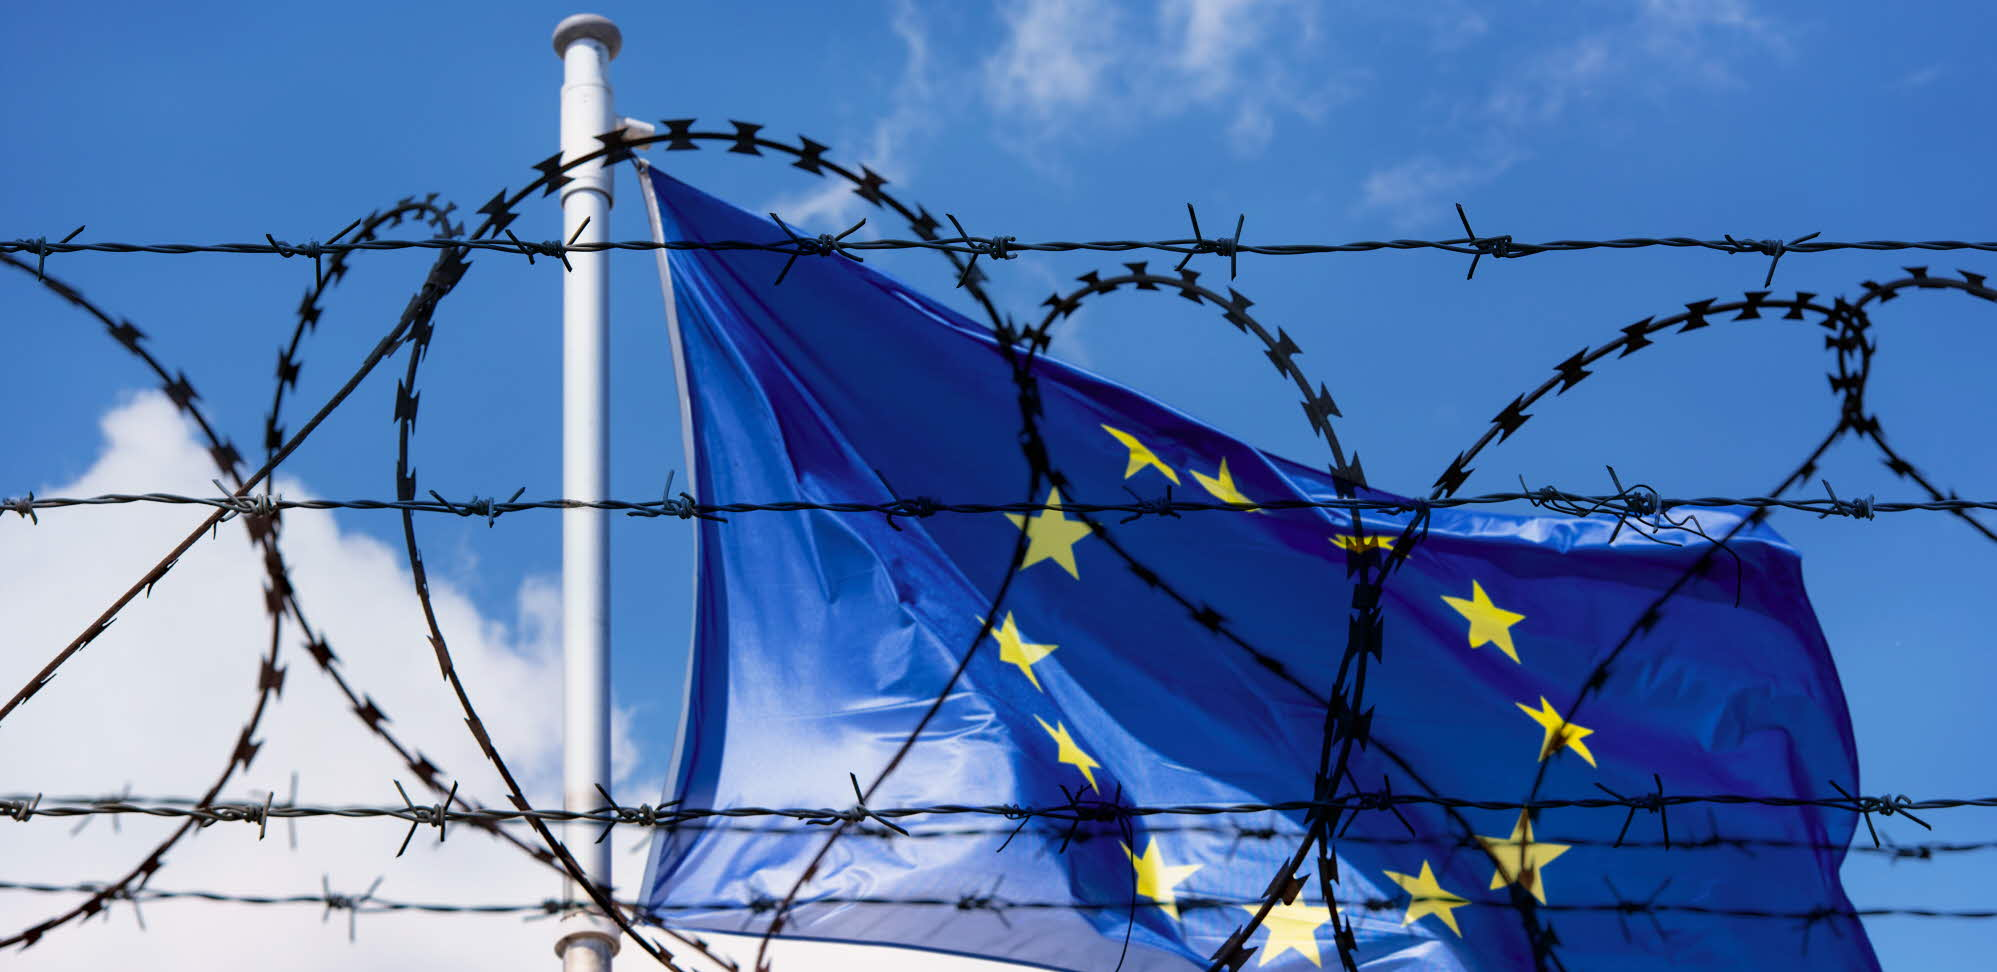 EU flag behind barbed wire